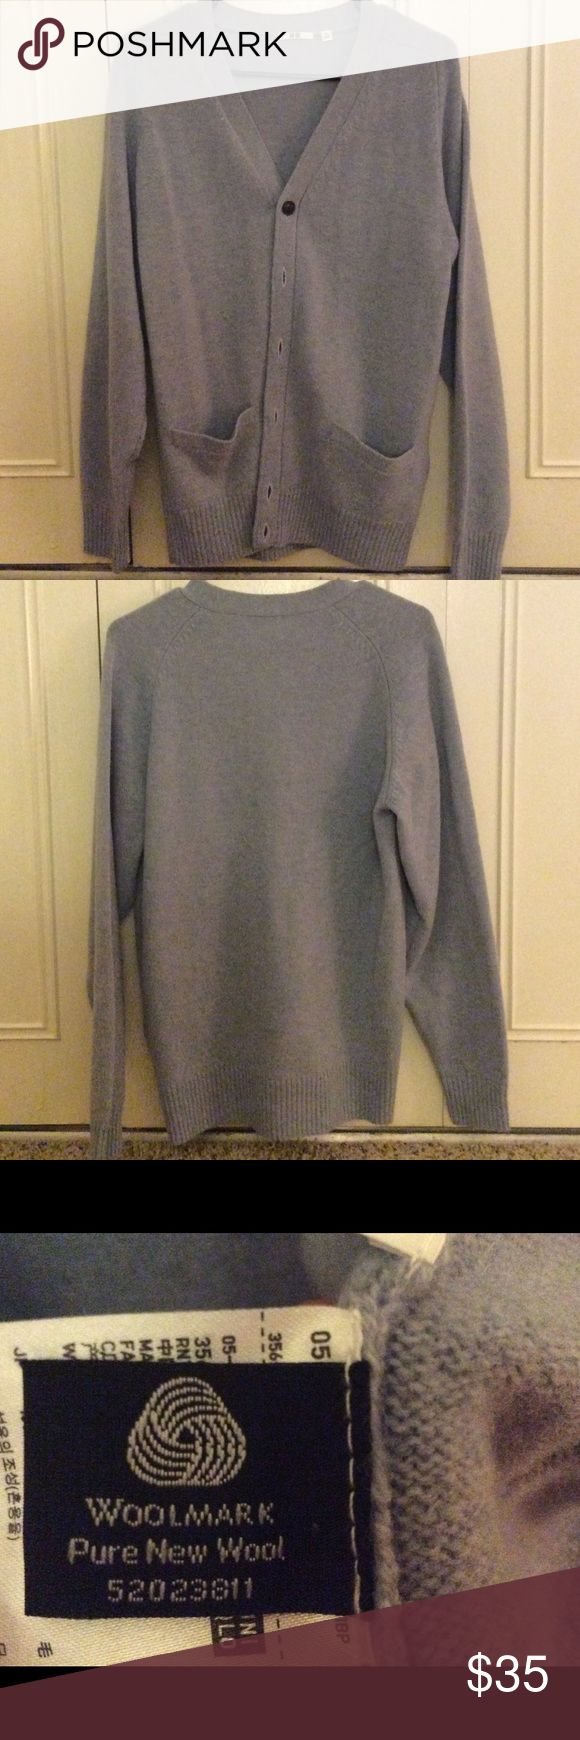 UNIQLO cardigan NEW!!!!! Sky blue color💙 Pure new wool!!!!!! Uniqlo Sweaters Cardigans